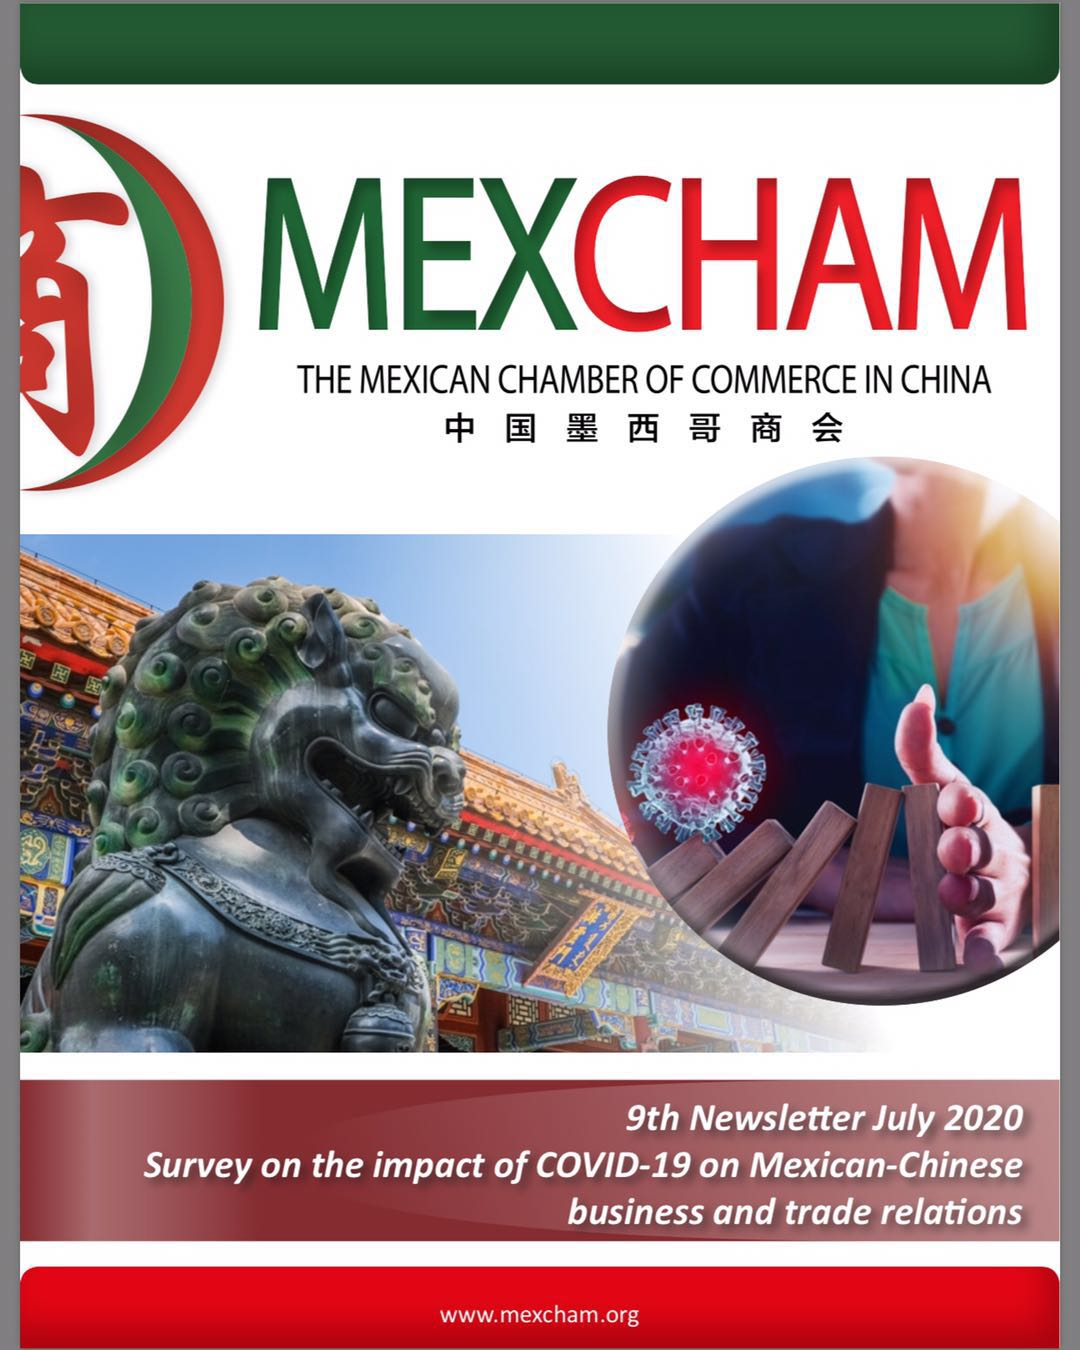 Release of MEXCHAM's Survey on the impact of COVID-19